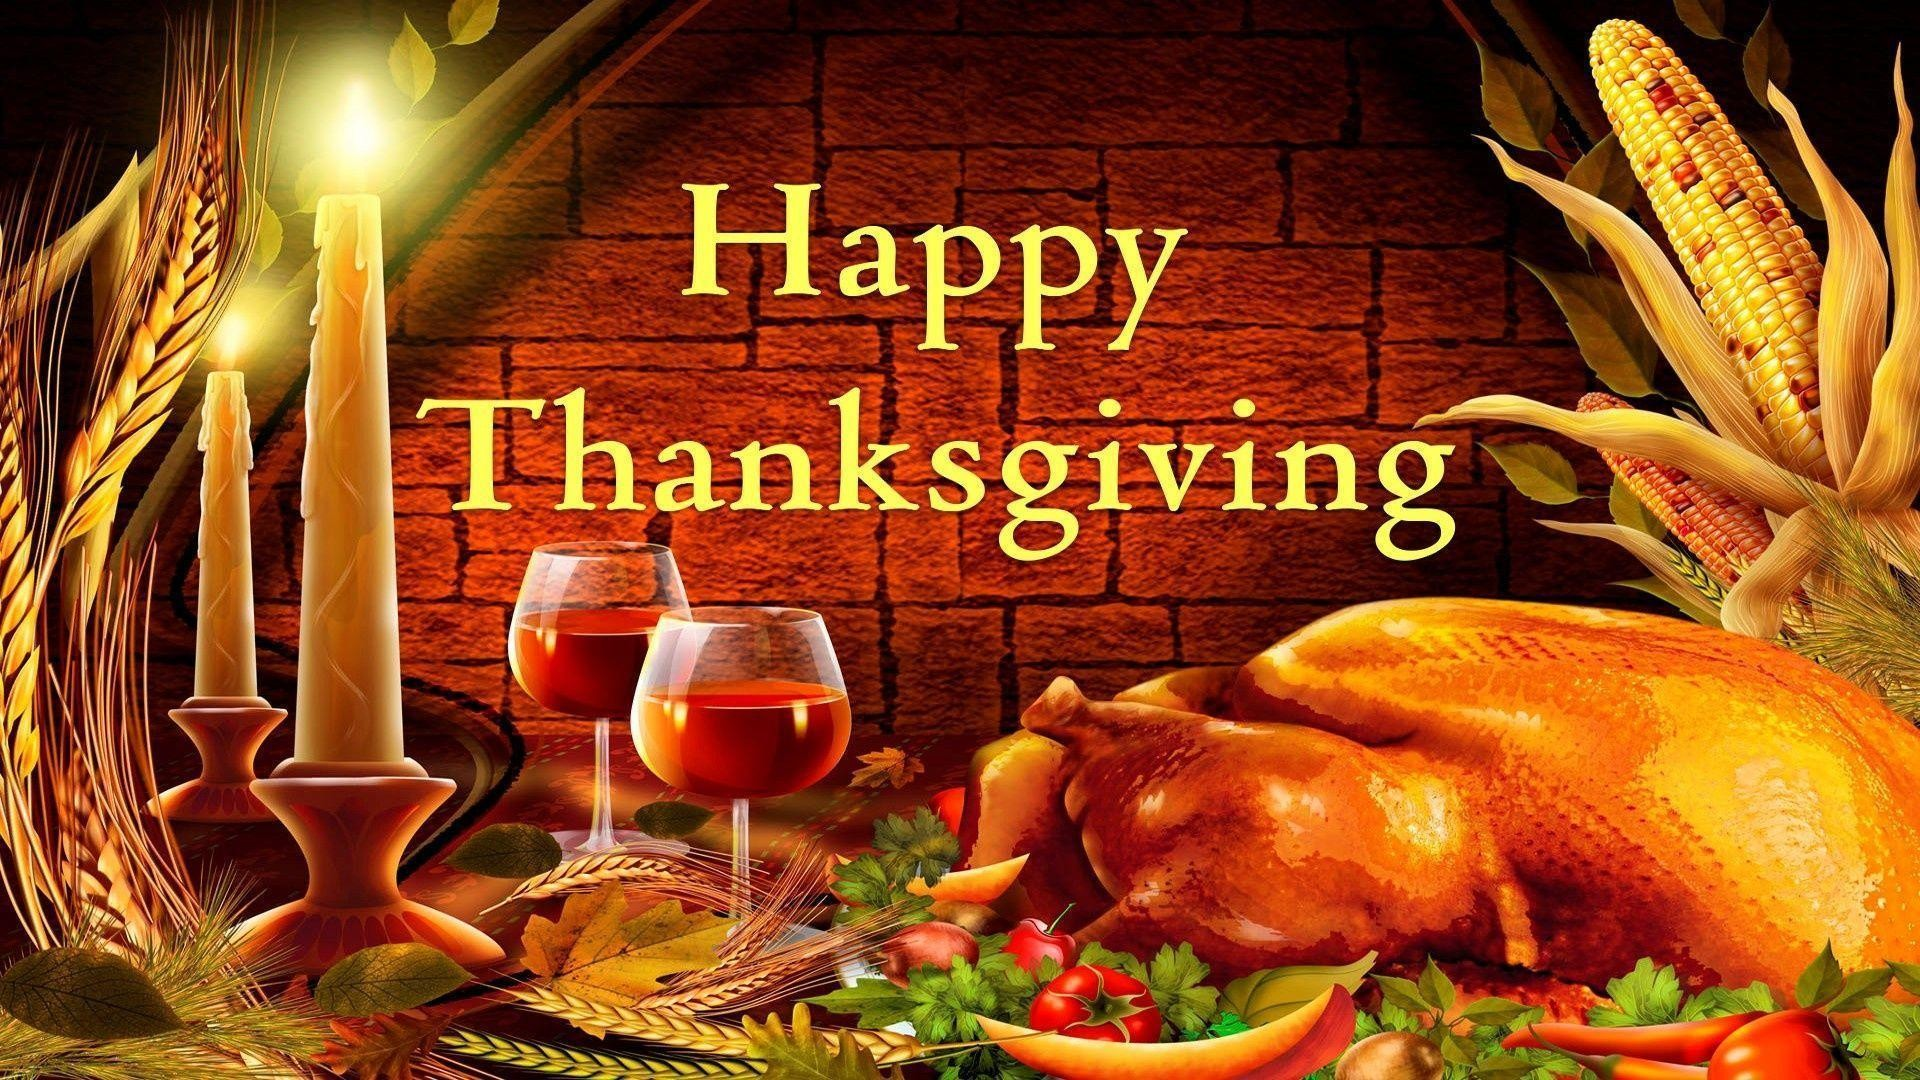 50 Happy Thanksgiving Images 2019 Thanksgiving Pictures Photos 1920x1080